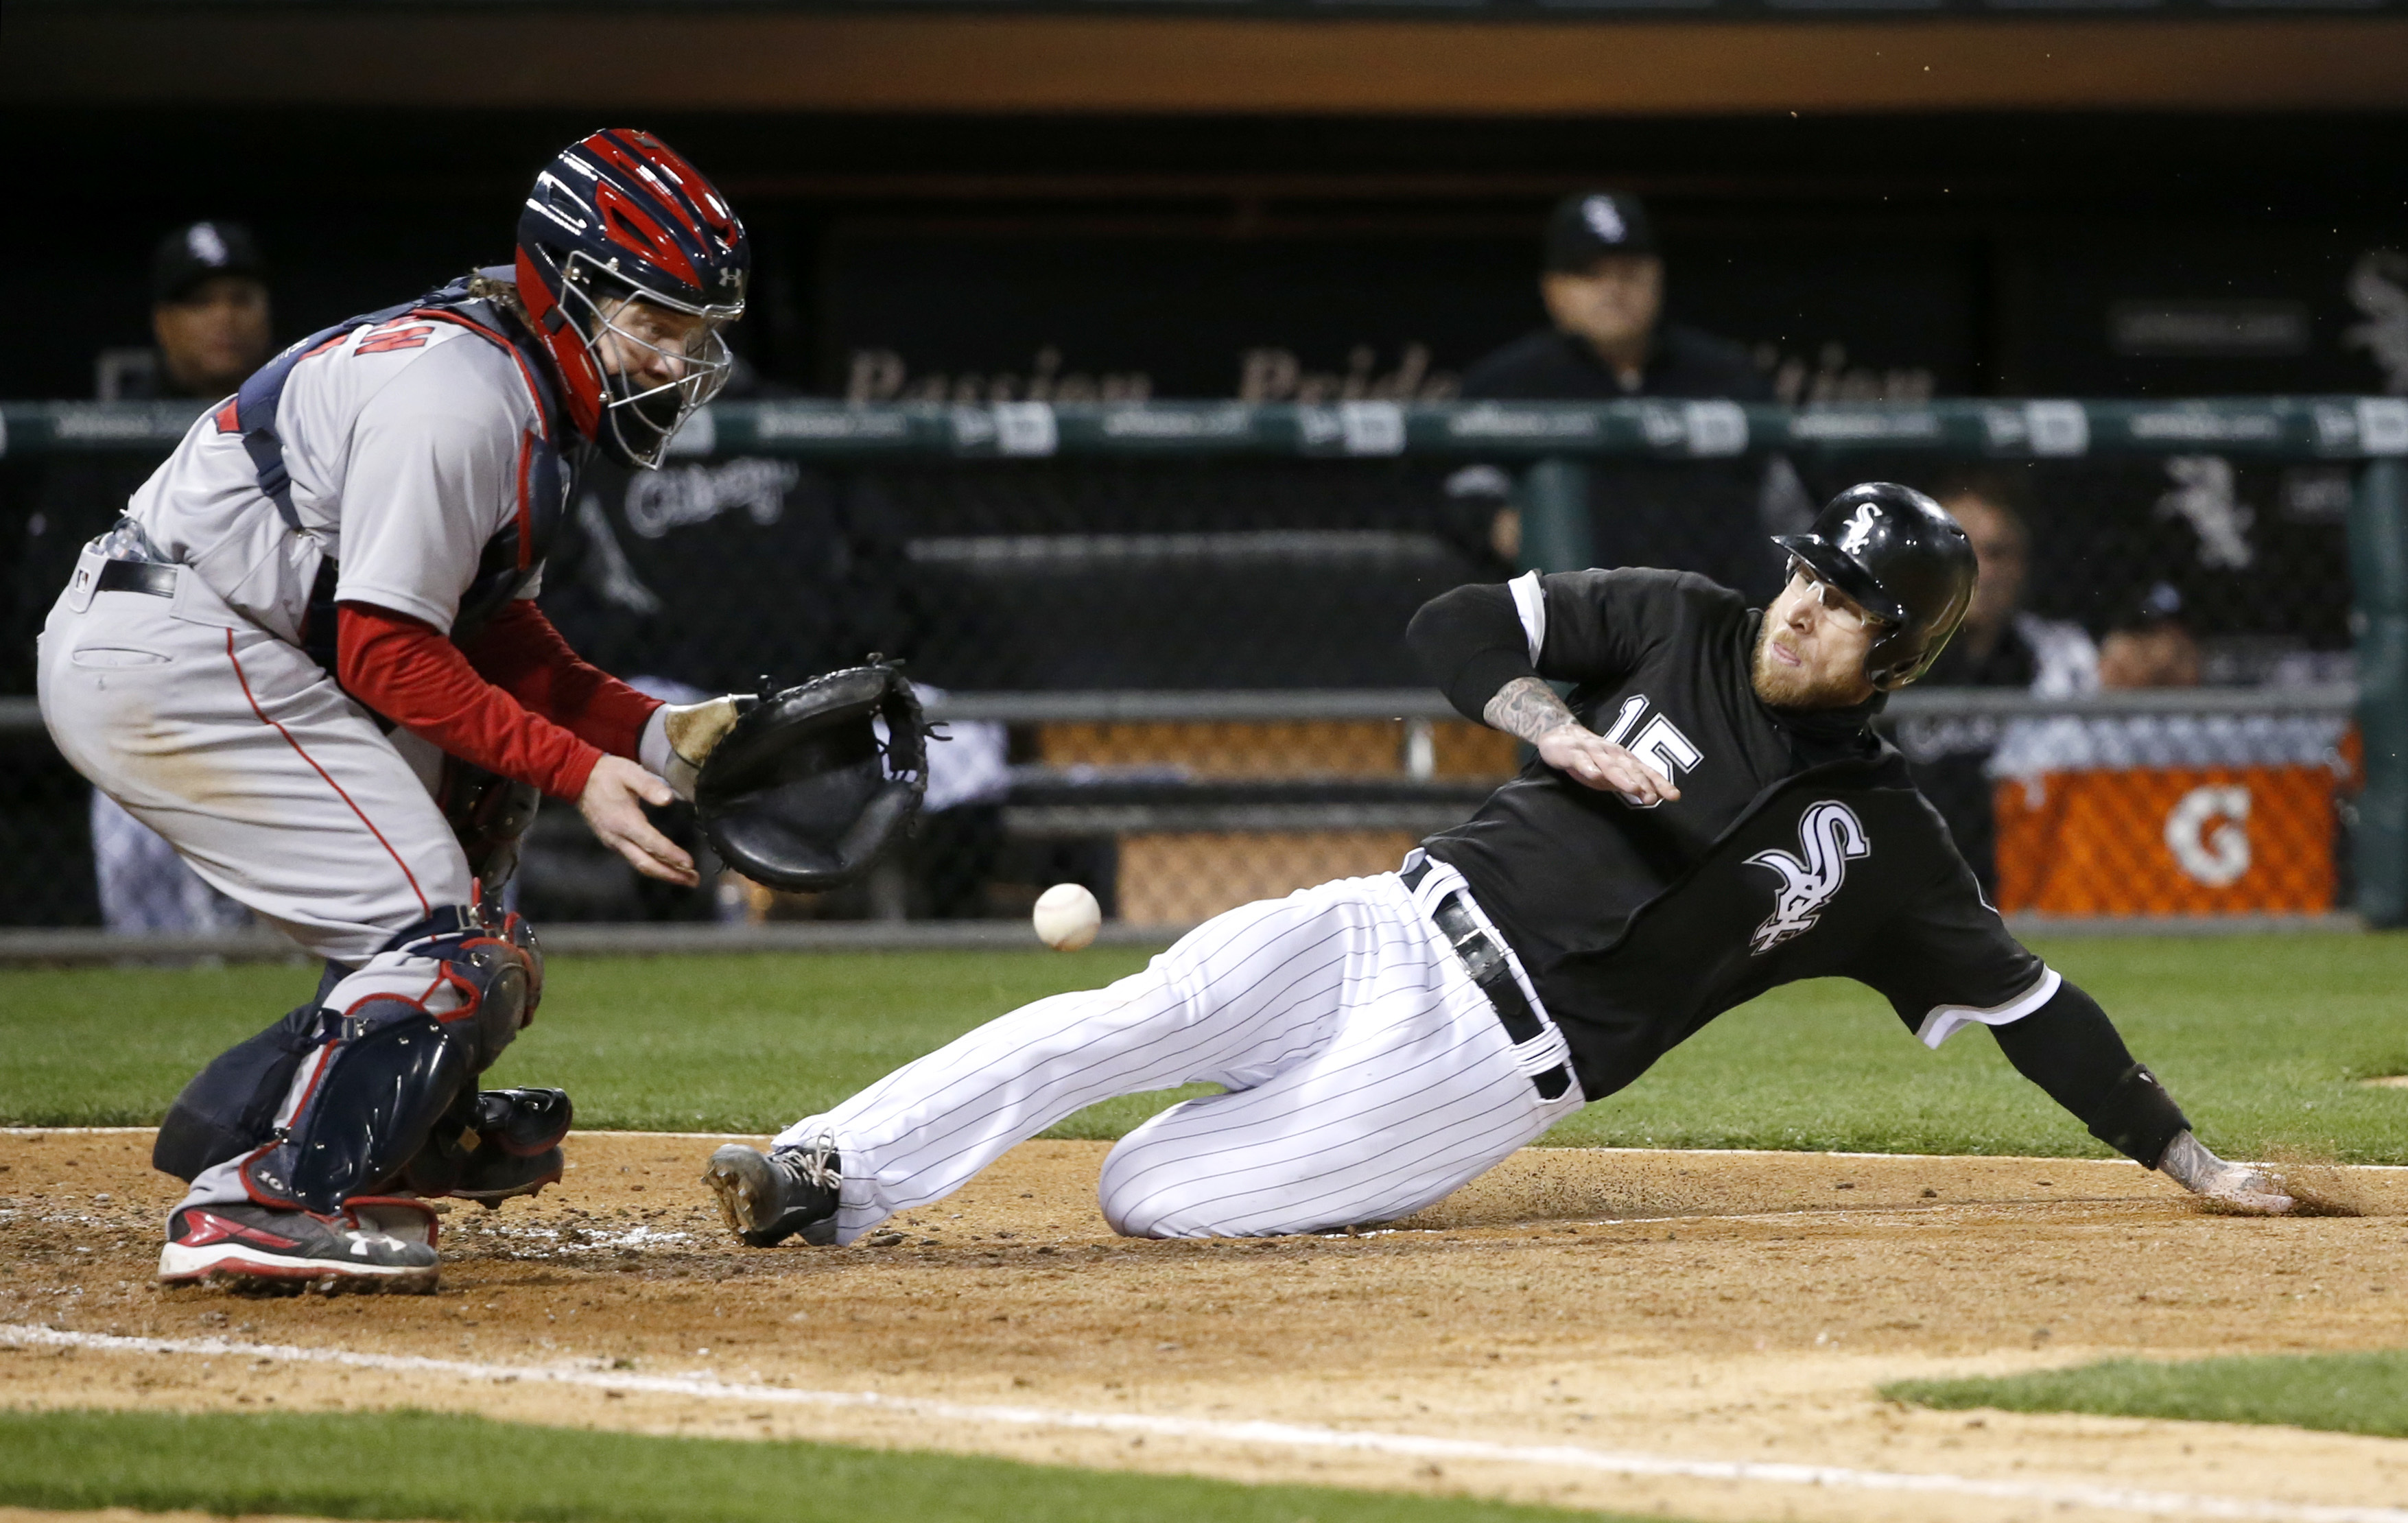 Chicago White Sox's Brett Lawrie, right, tries to score on a sacrifice fly by Austin Jackson but is called out on a throw from Boston Red Sox right fielder Mookie Betts to catcher Ryan Hanigan during the fifth inning of a baseball game Thursday, May 5, 20